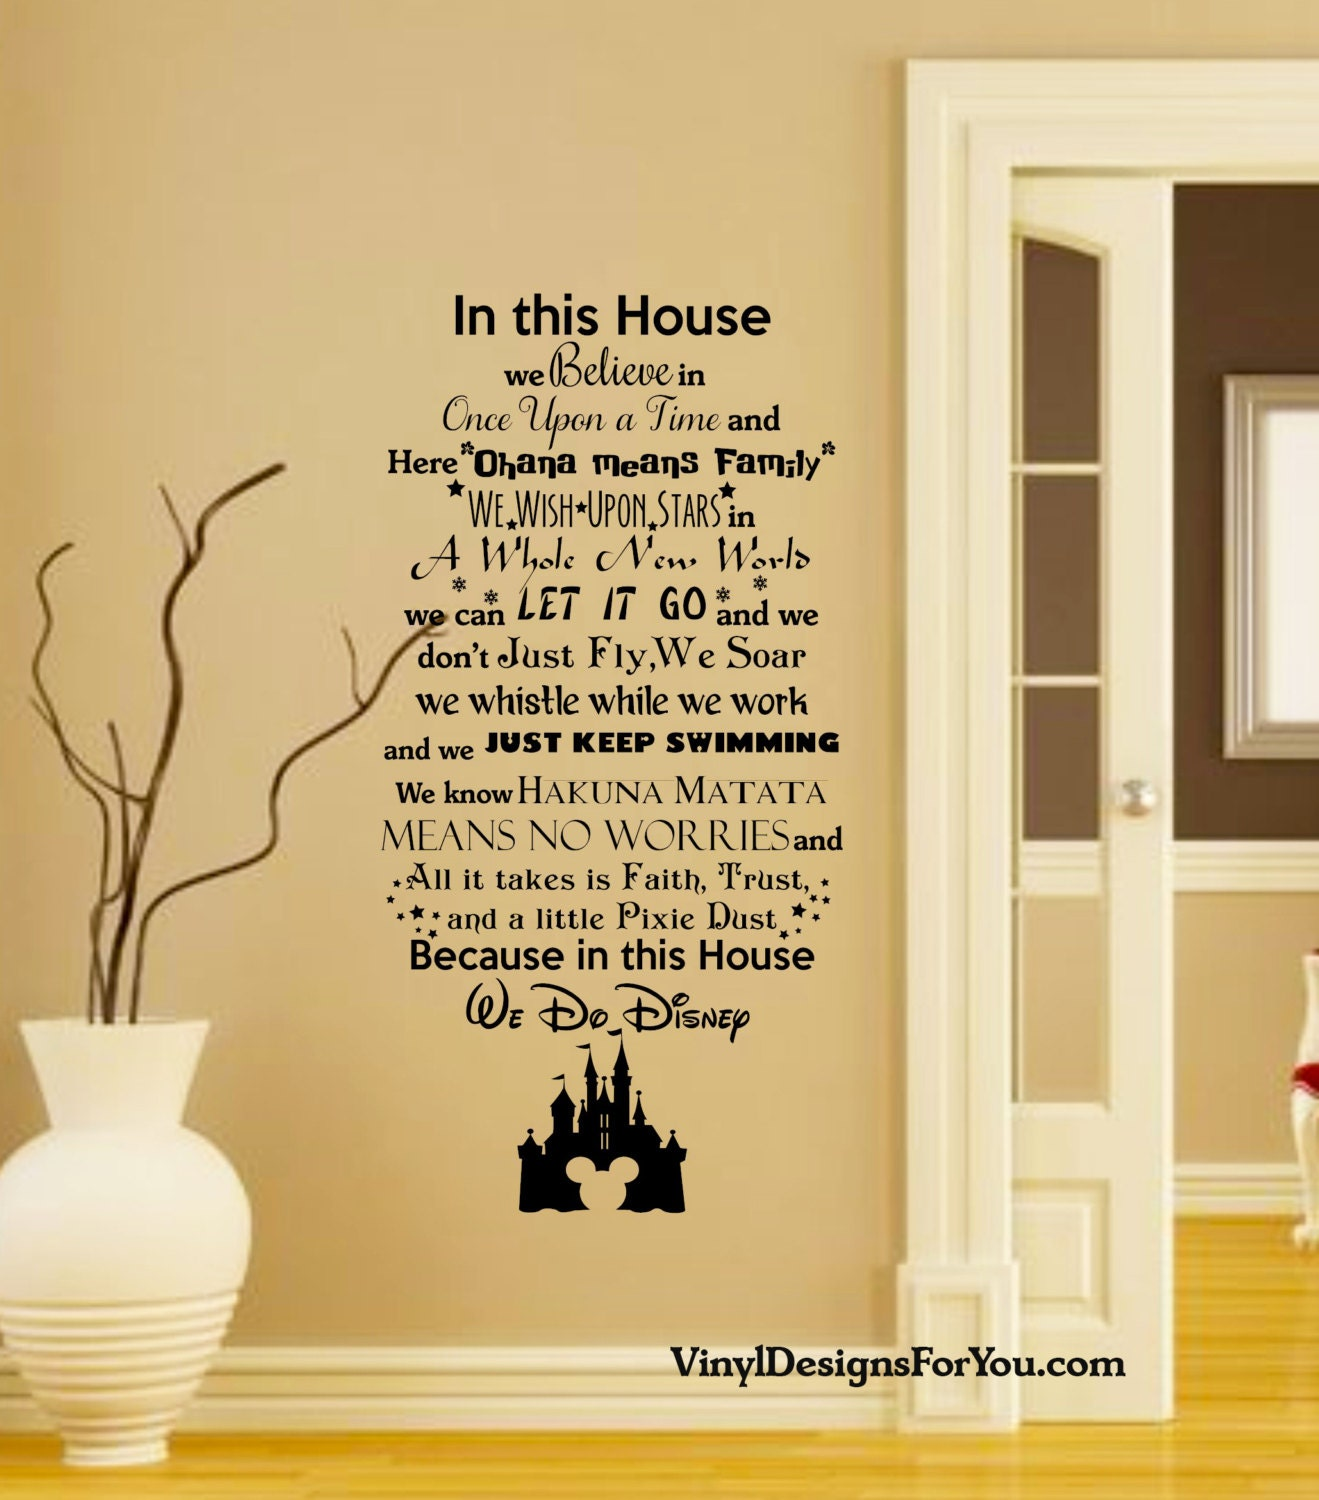 Disney Wall Decal  in this house we do disney wall decal with by vinyldesignsforyou with in